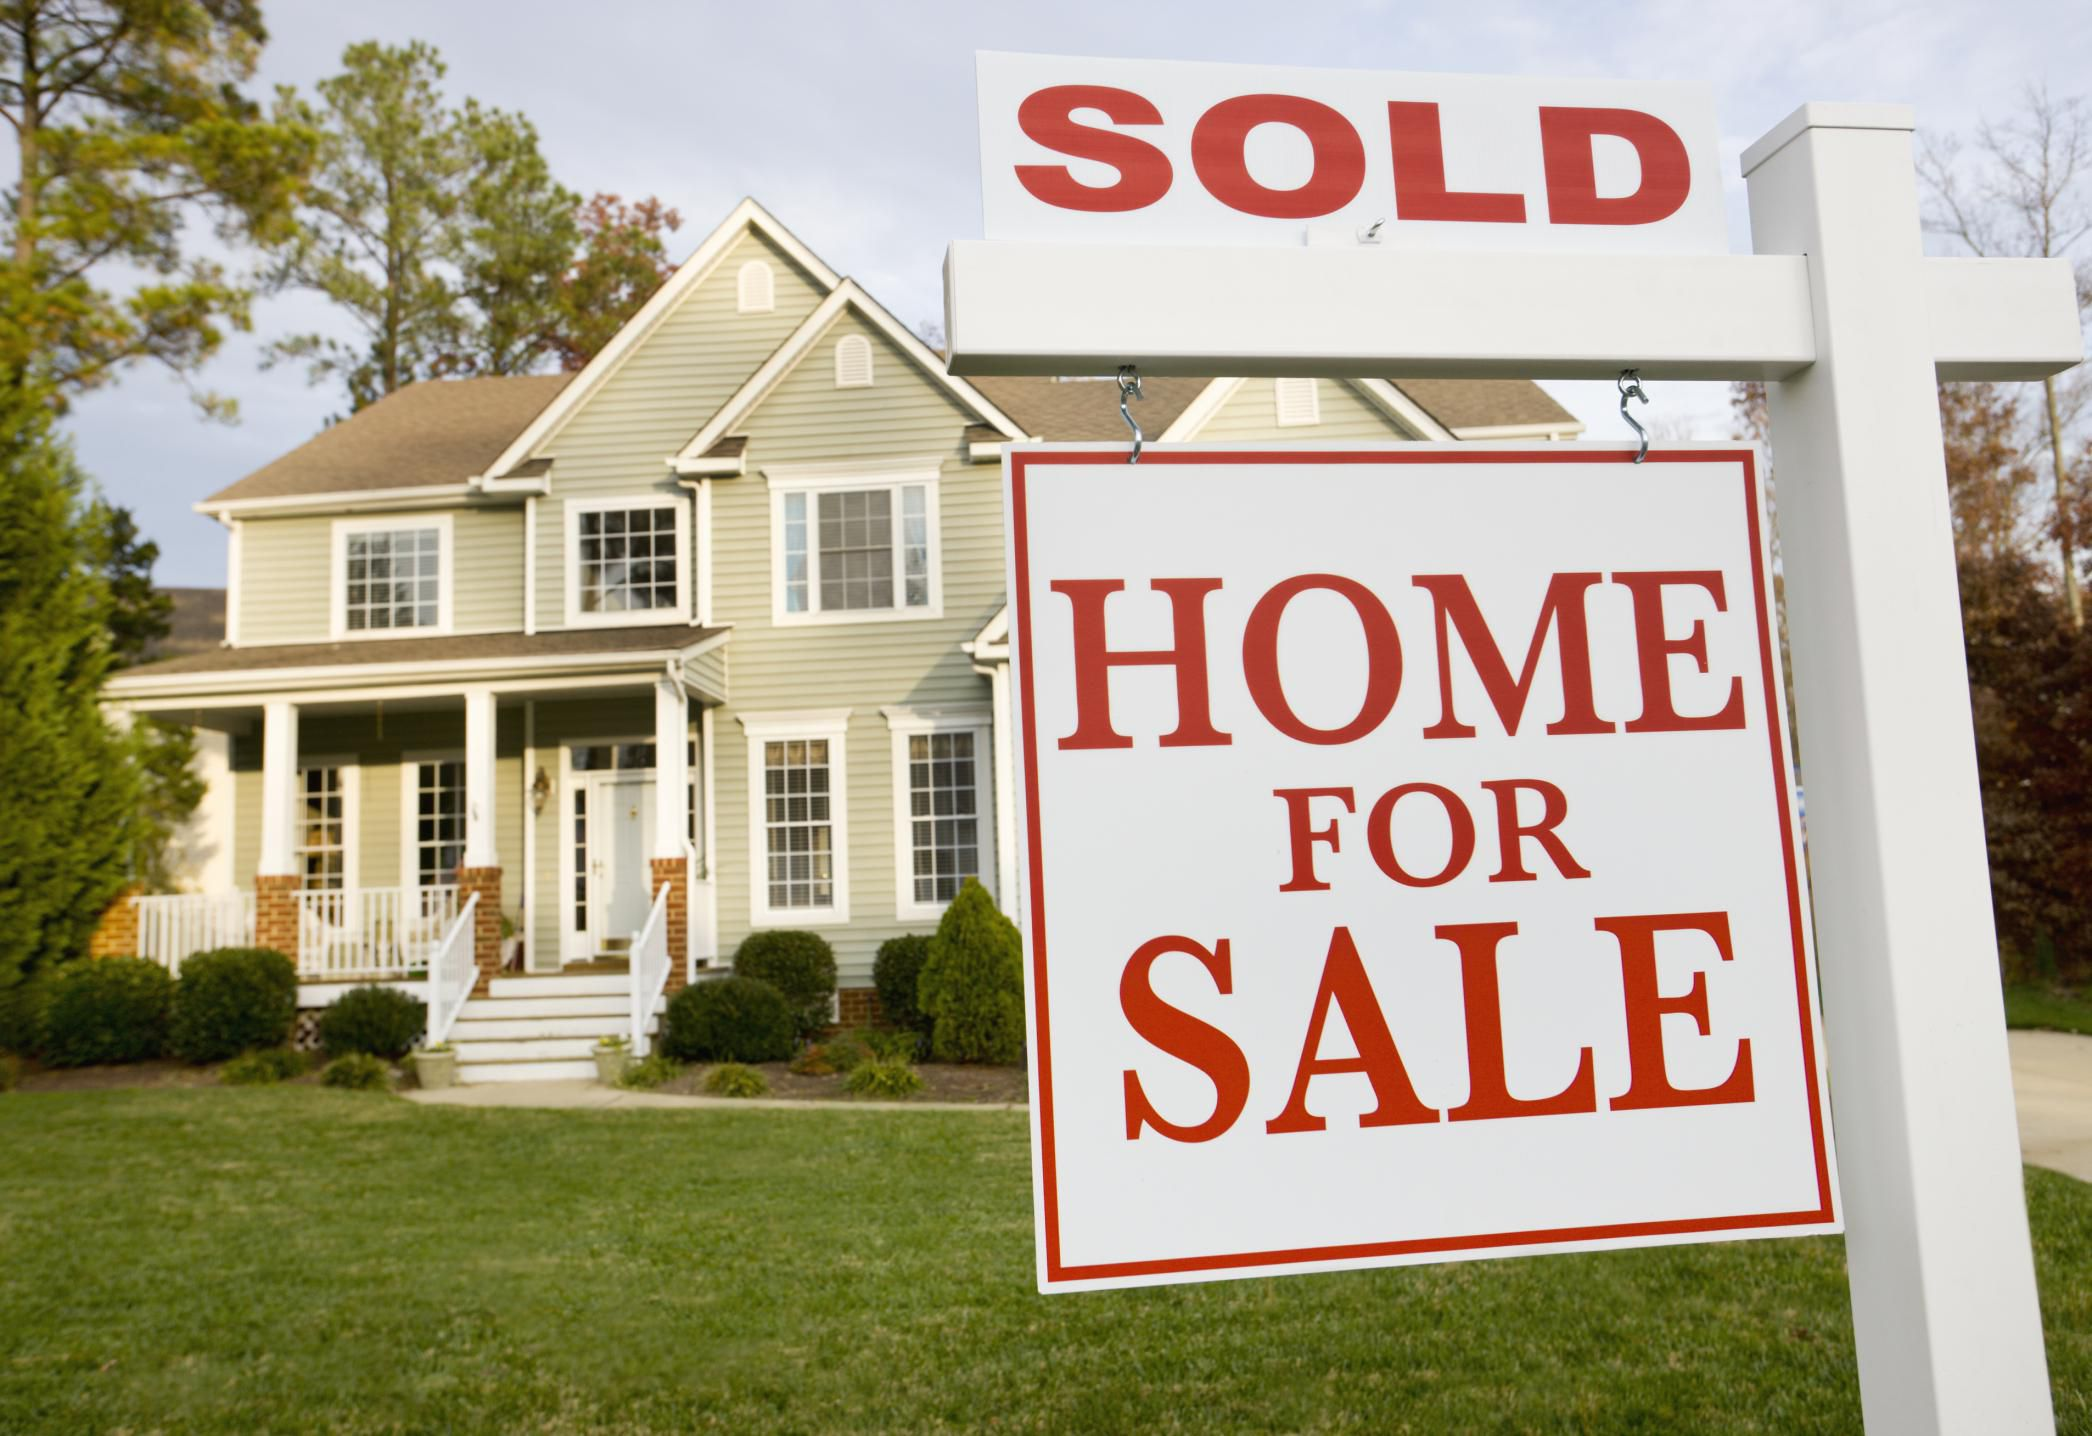 The Home Sales Exclusion From Capital Gains Tax